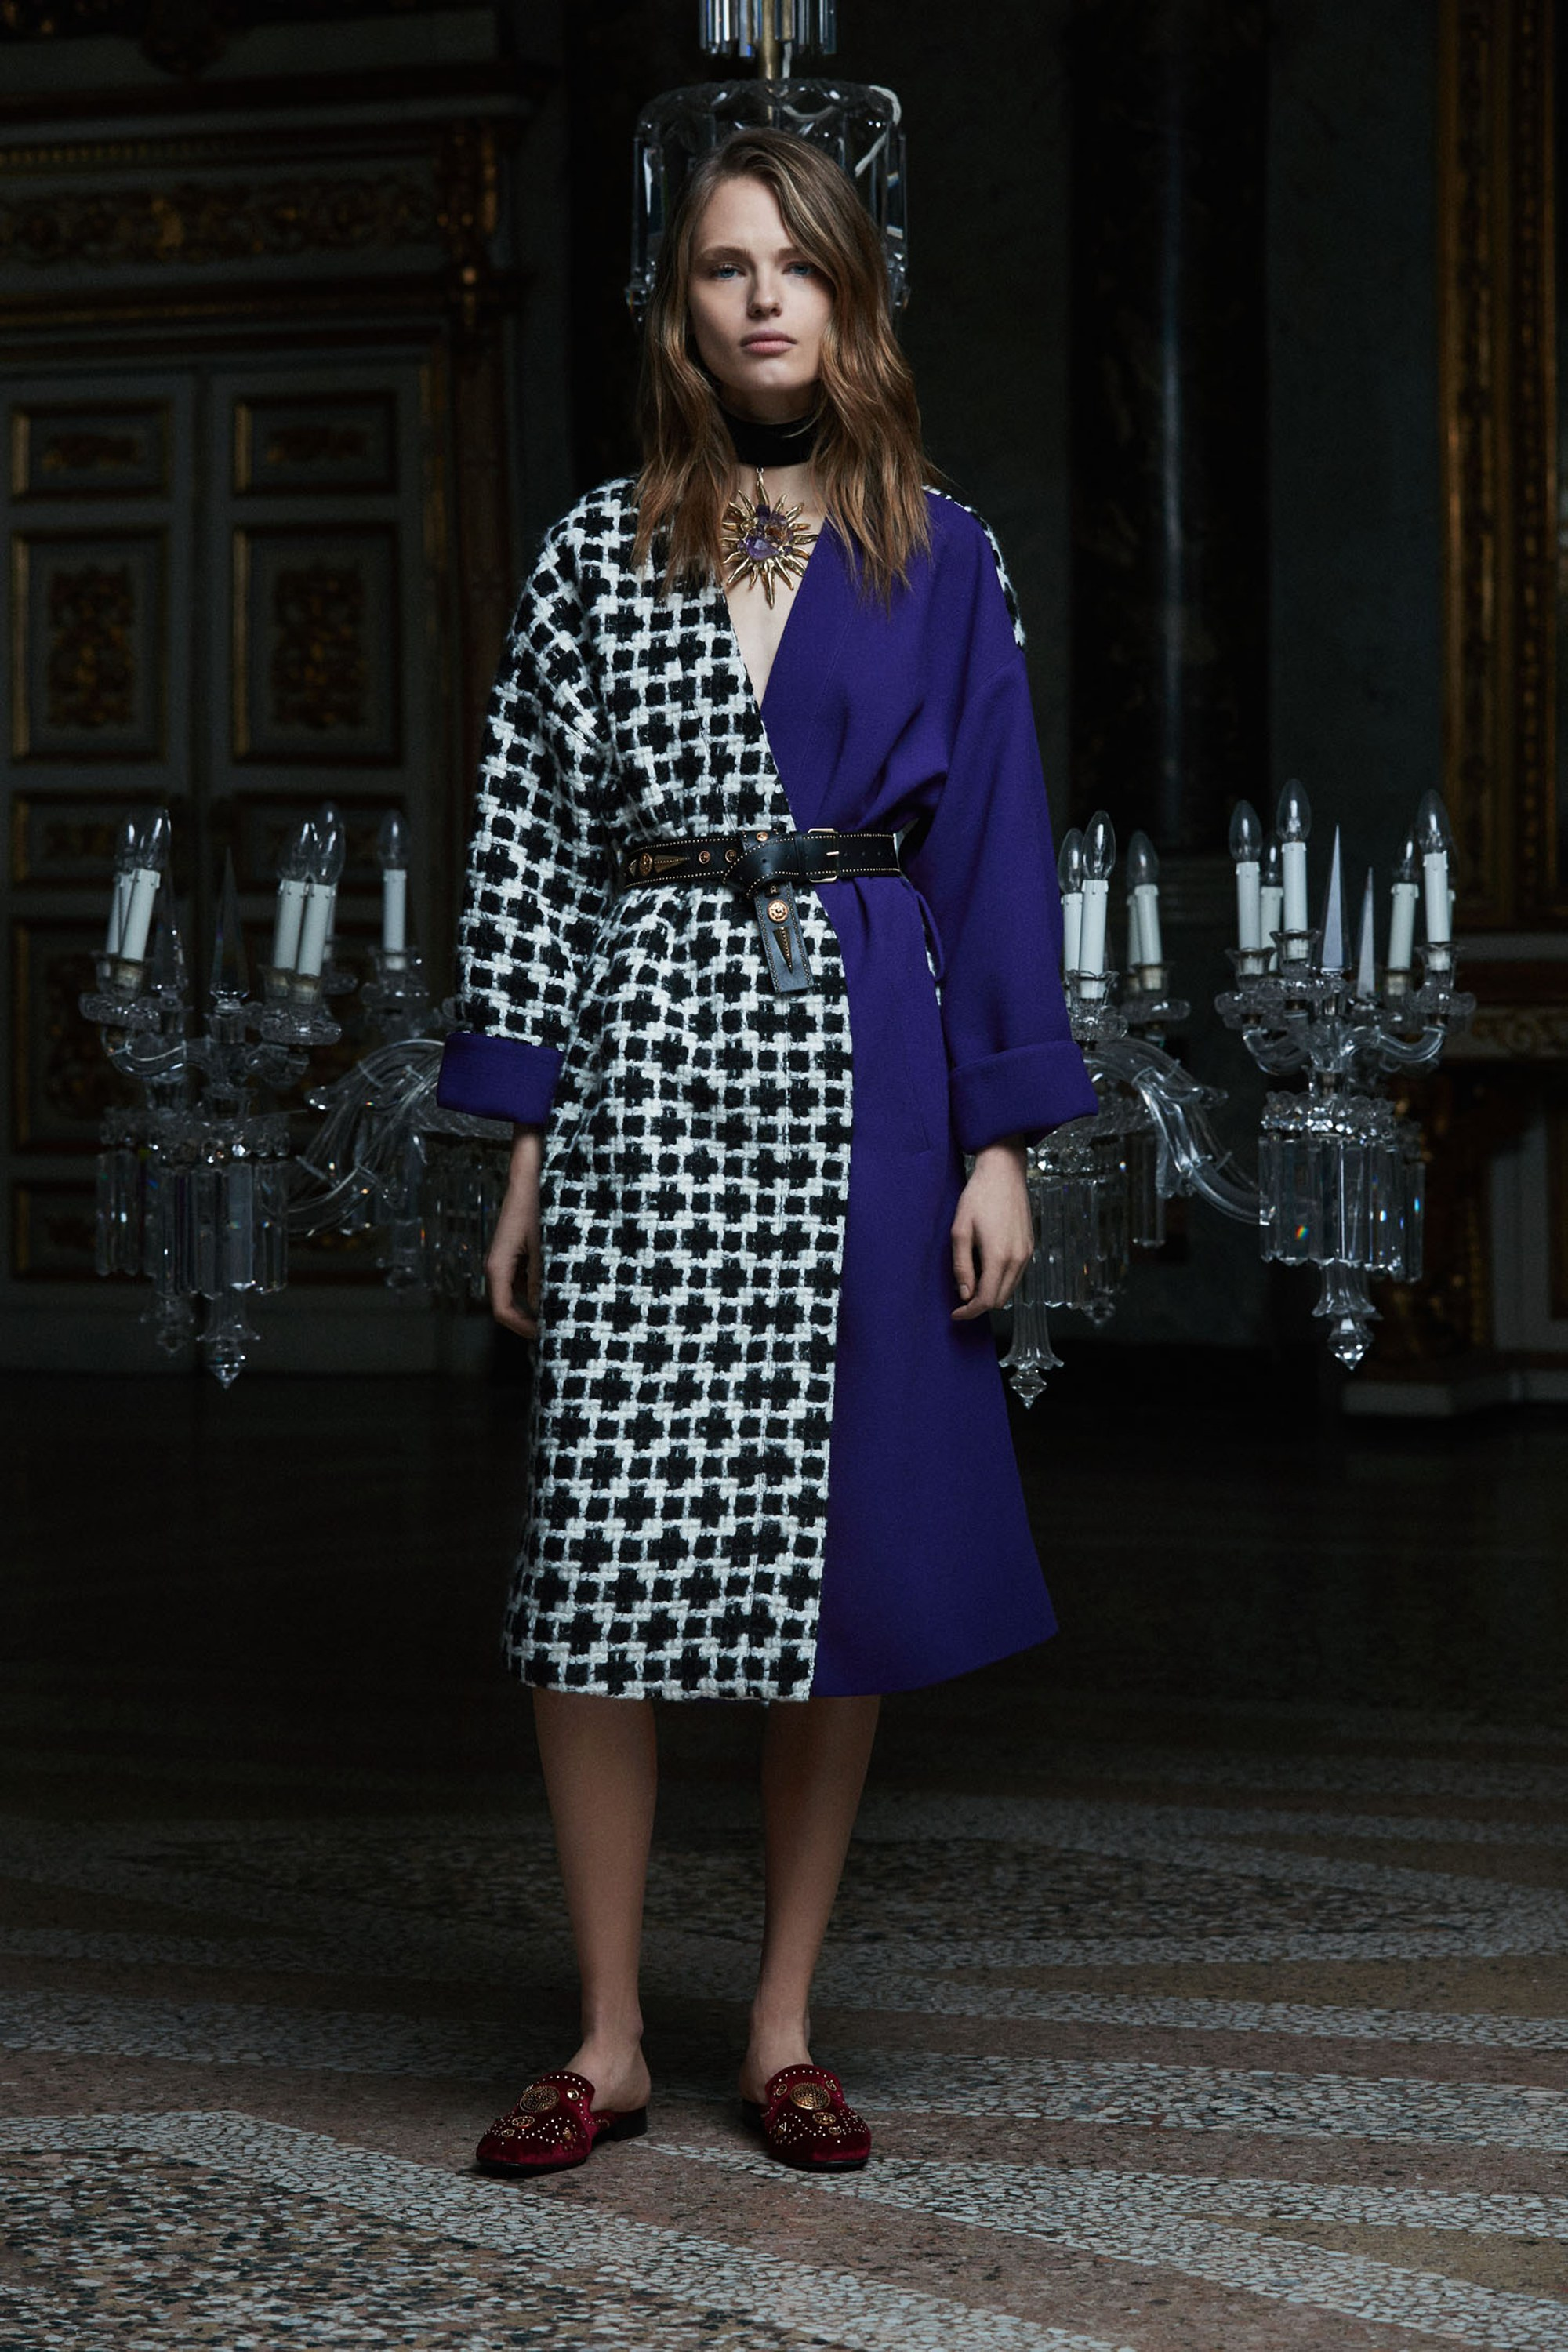 Pre-Fall 2017 Collection Highlights | The Fashion Folks